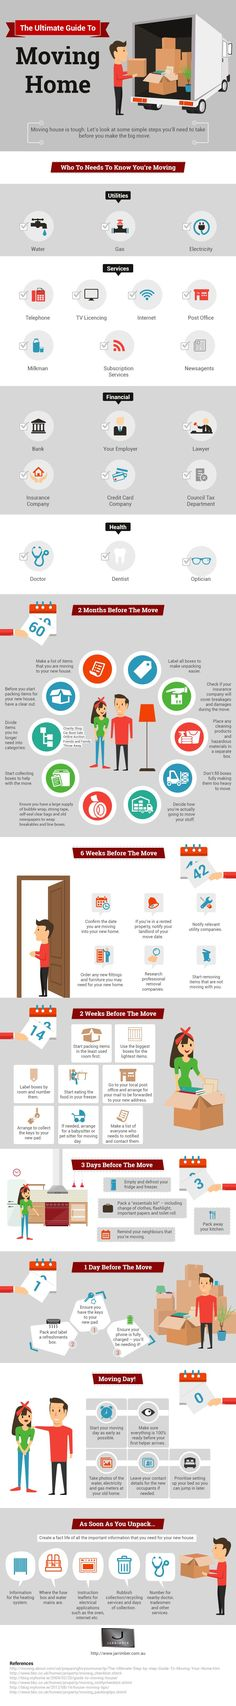 As the infographic below outlines, separating essential items from non-essential items is crucial as it is not realistic to have everything packed away weeks before you move. Keeping a detailed list of what you have packed into every box will make unpacking far less overwhelming.